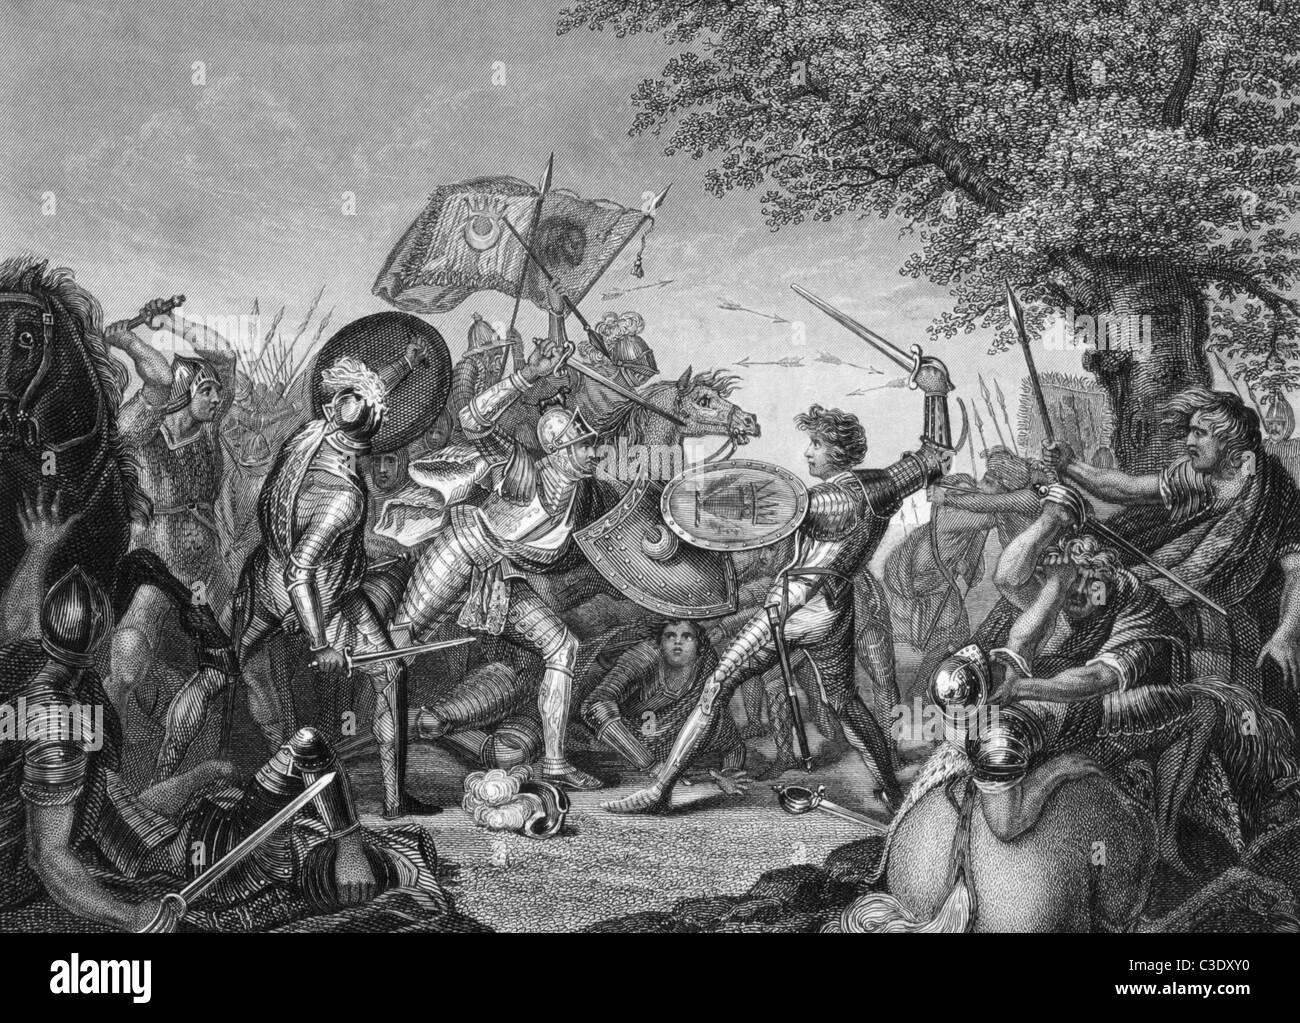 Battle of Humbleton Hill on engraving from the 1800s. Conflict between the English and Scottish in 1402. - Stock Image